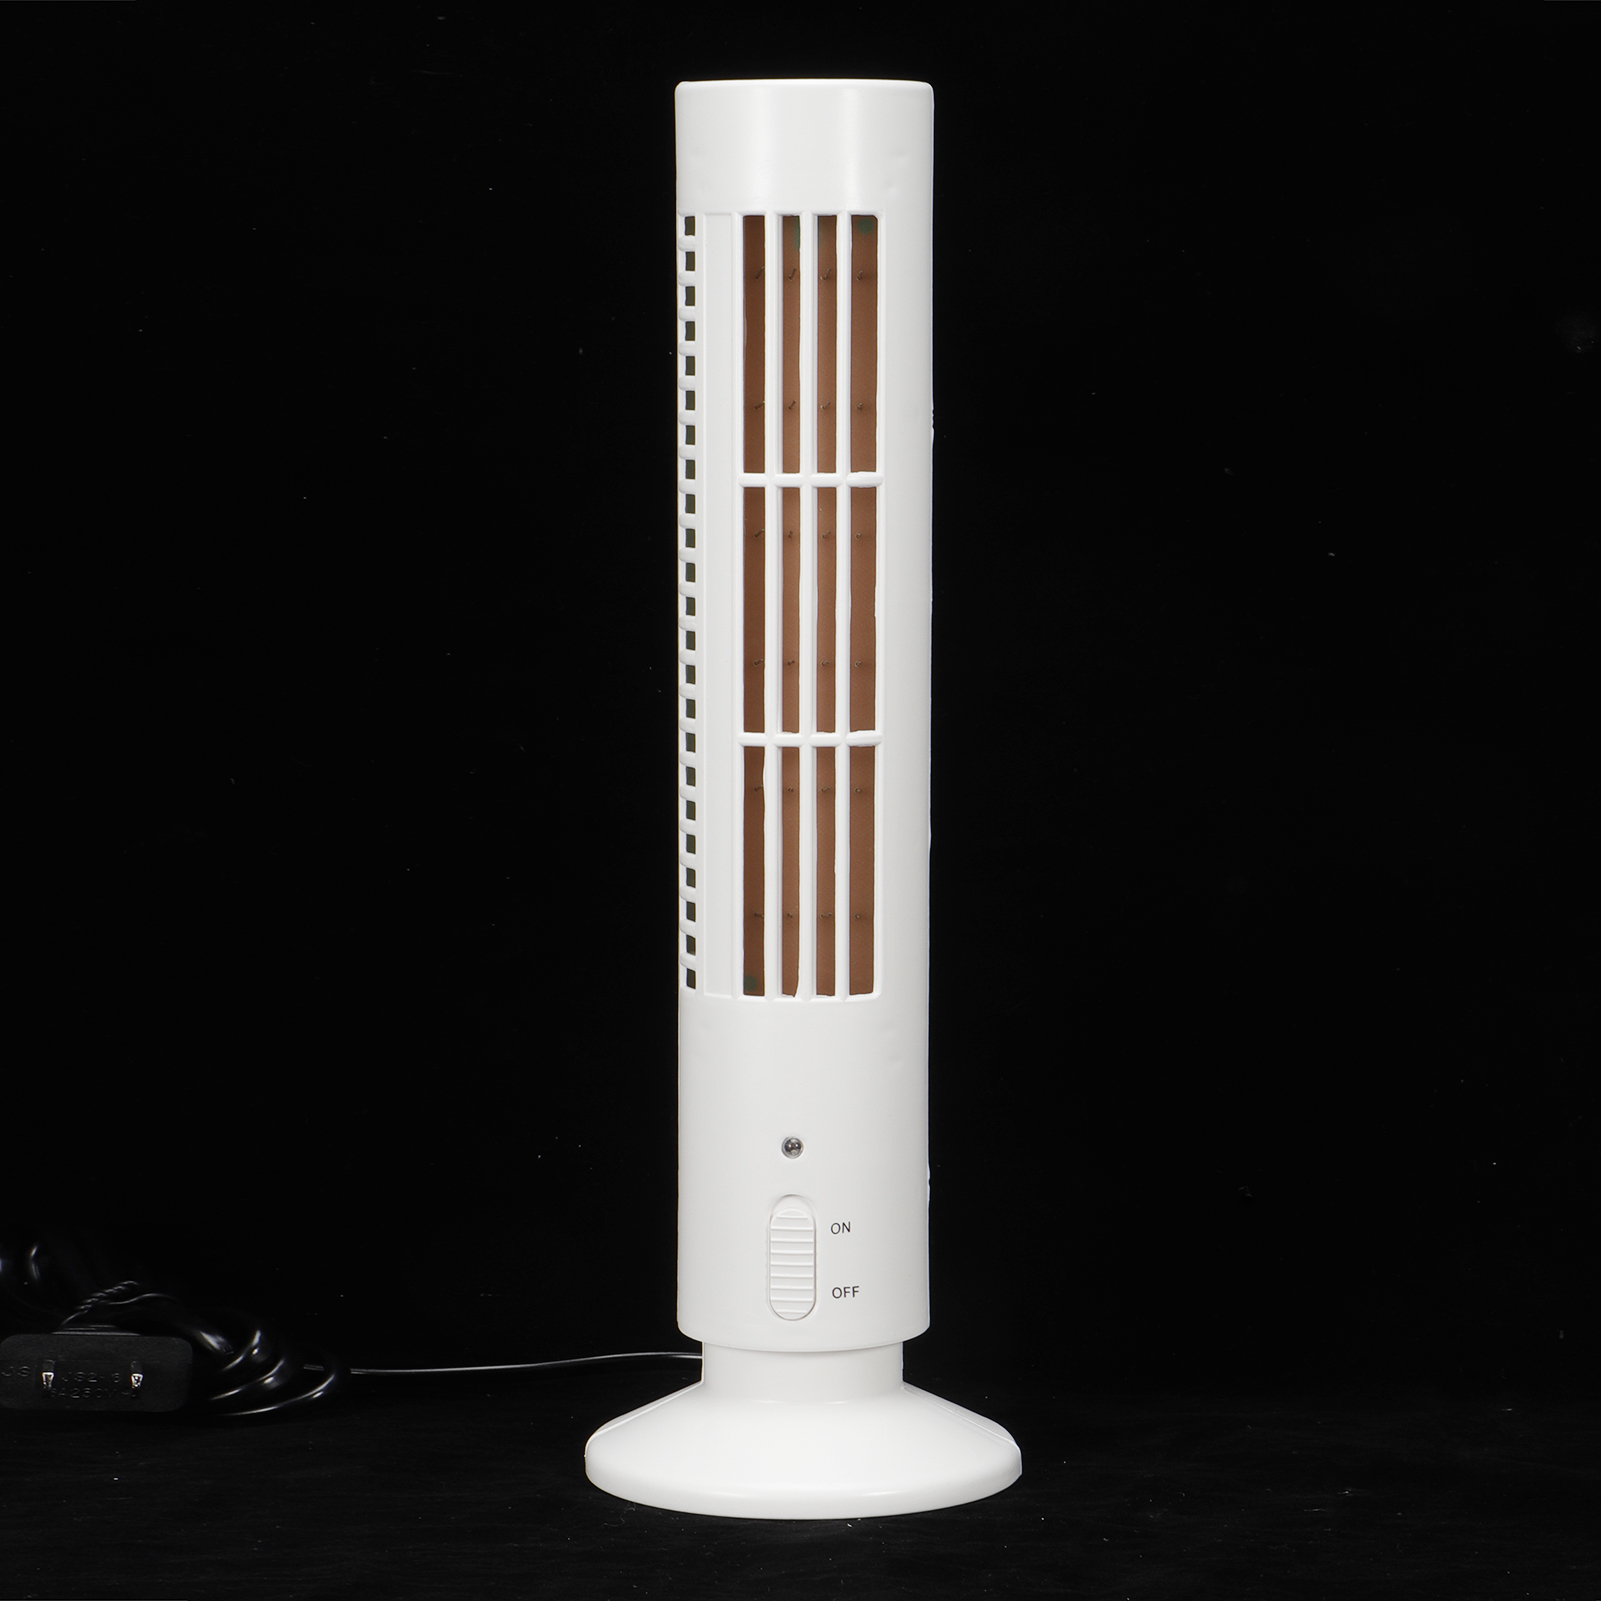 thumbnail 13 - Air Cleaner Purifier Filter Negative Ionizer Table Purification Dust Pm2.5 110-2